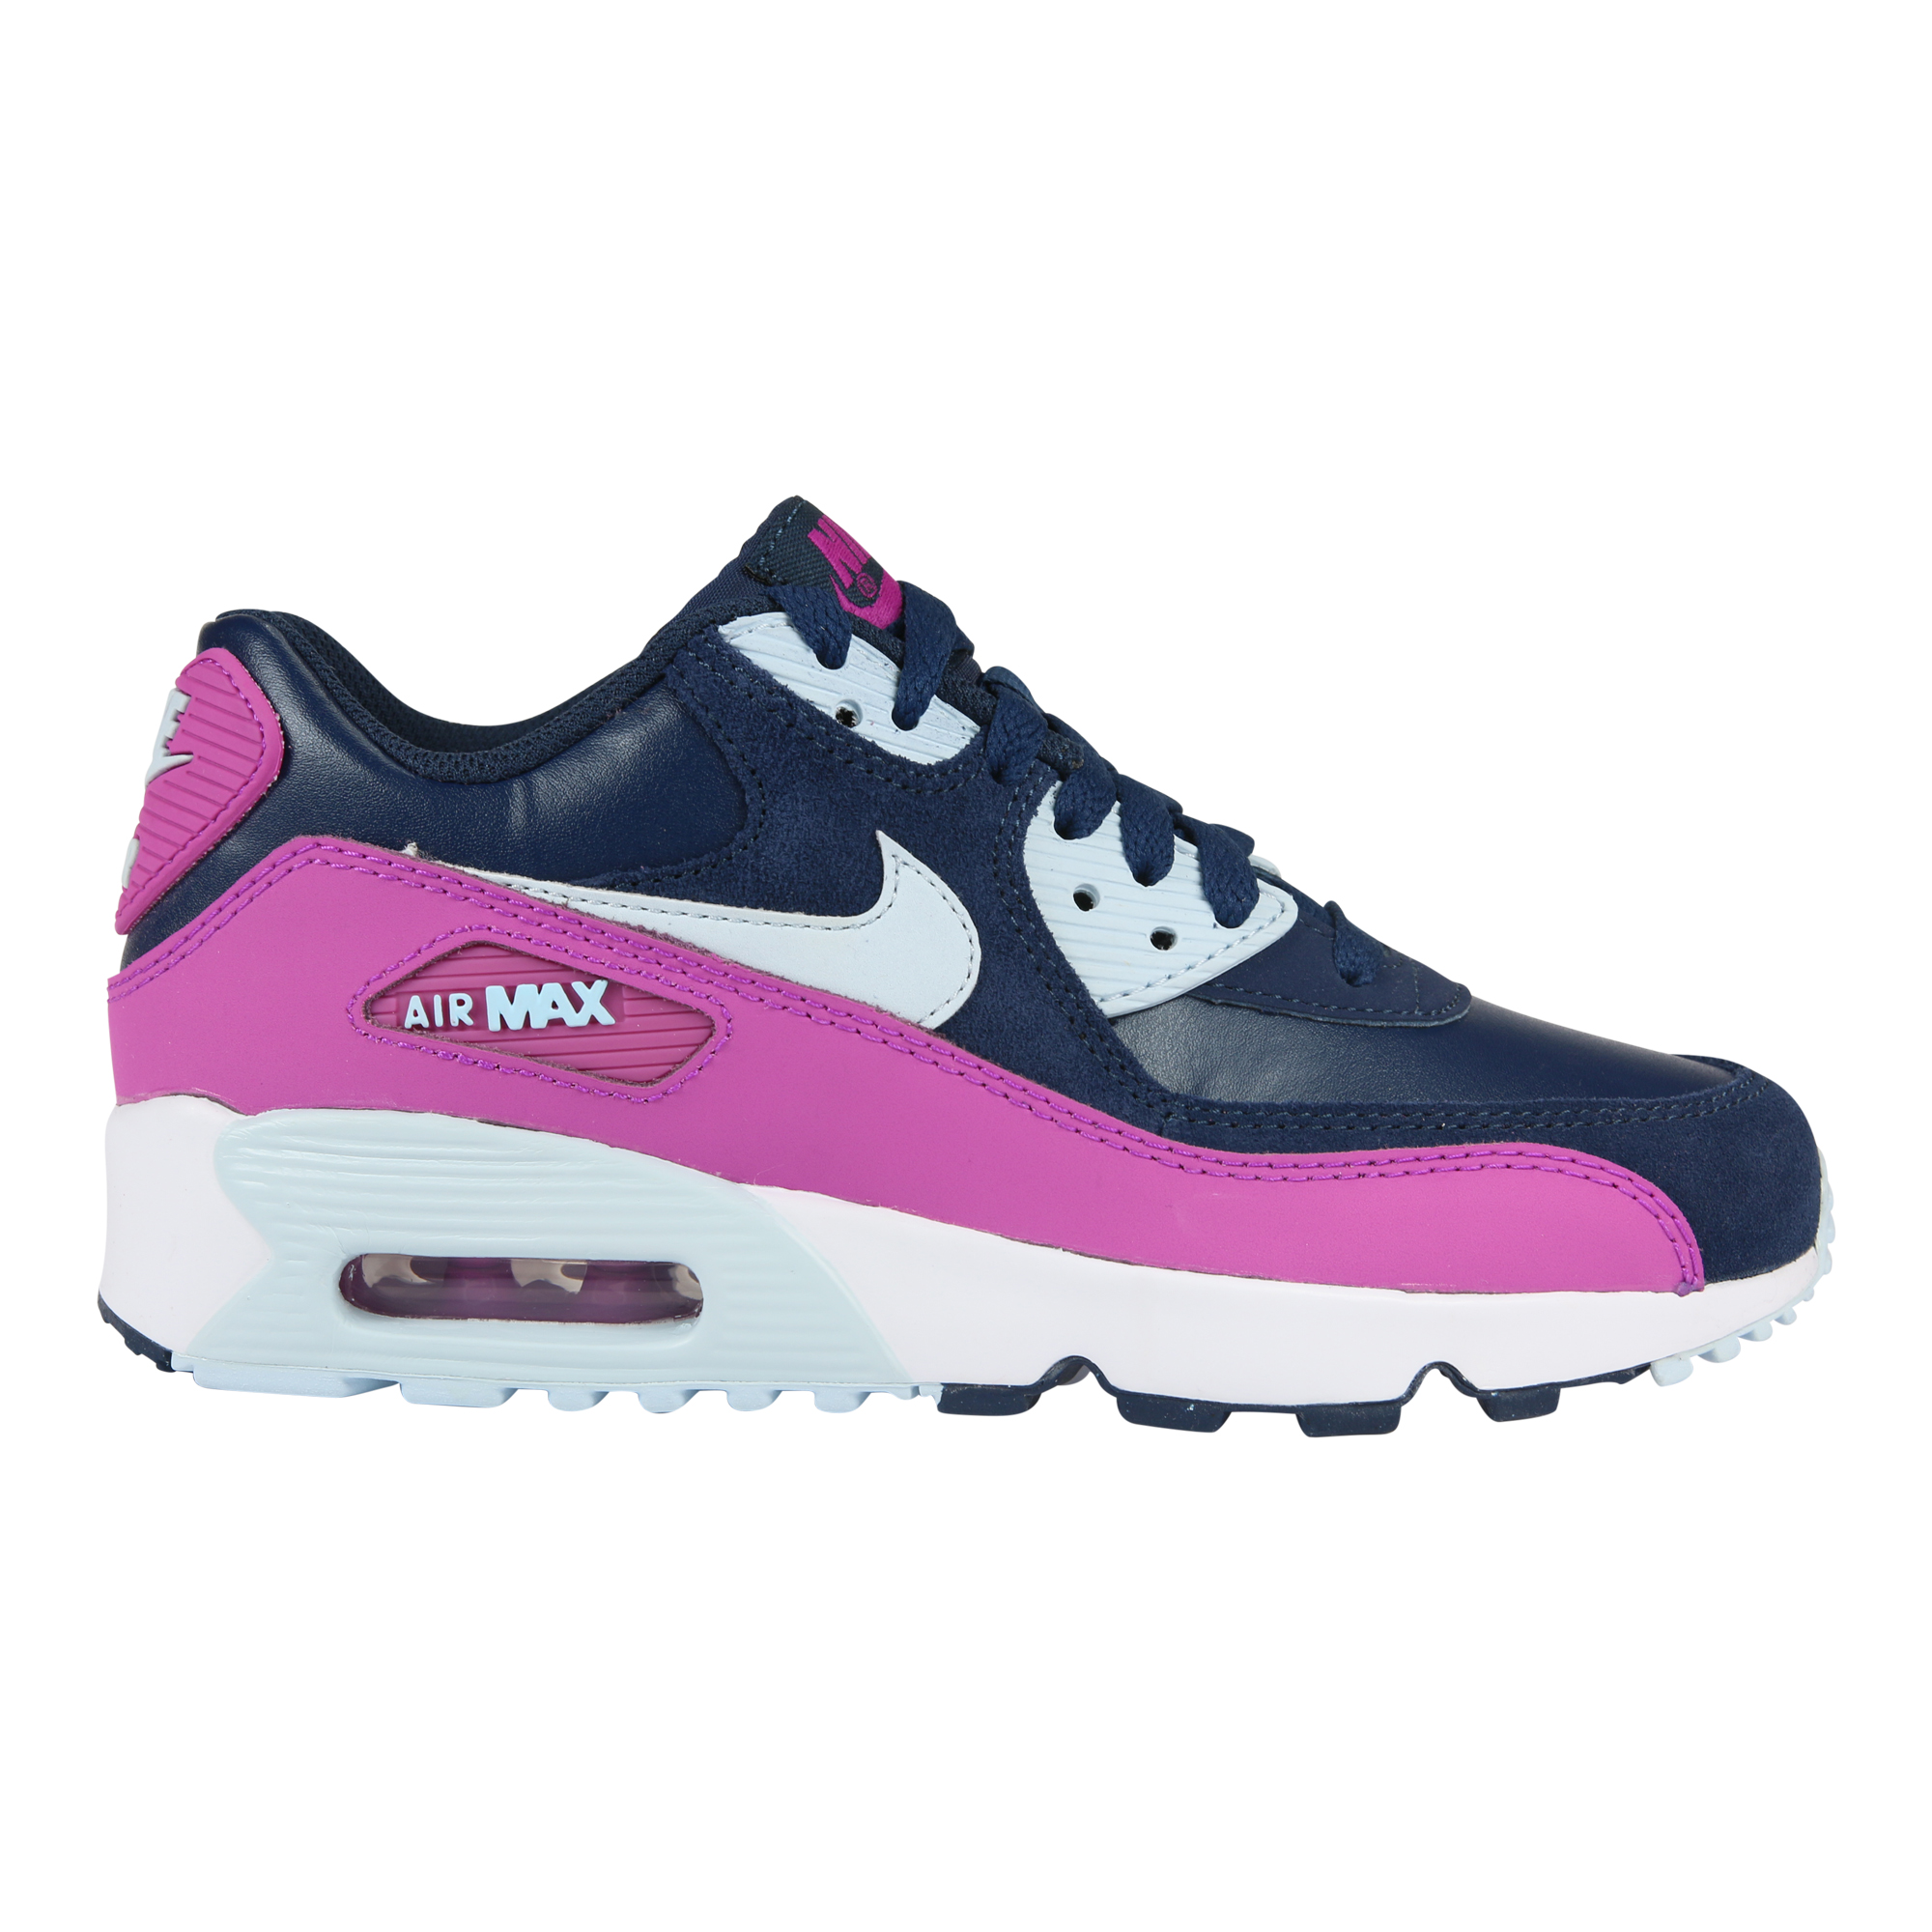 nike air max 90 gs schuhe turnschuhe sneaker kinder damen. Black Bedroom Furniture Sets. Home Design Ideas